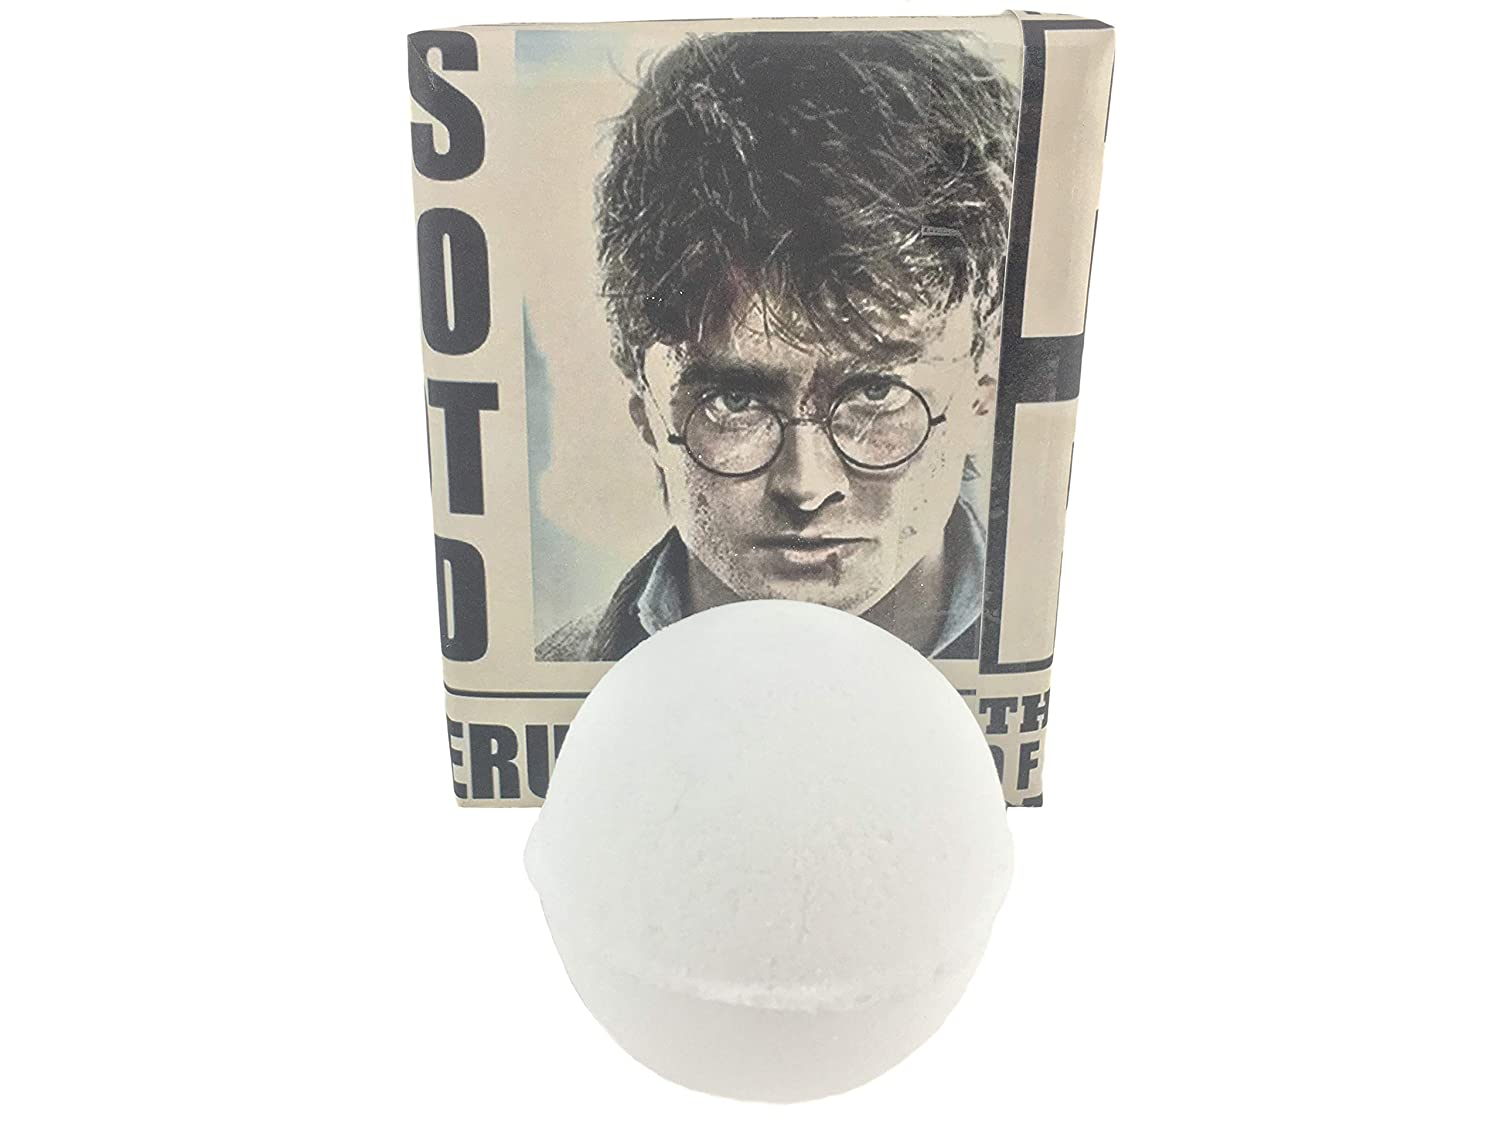 Ravenclaw Harry Potter Sorting Hat Bath Bomb Hogwarts Wizard In which House will your fate lie?   Free Spirit Bath and Body